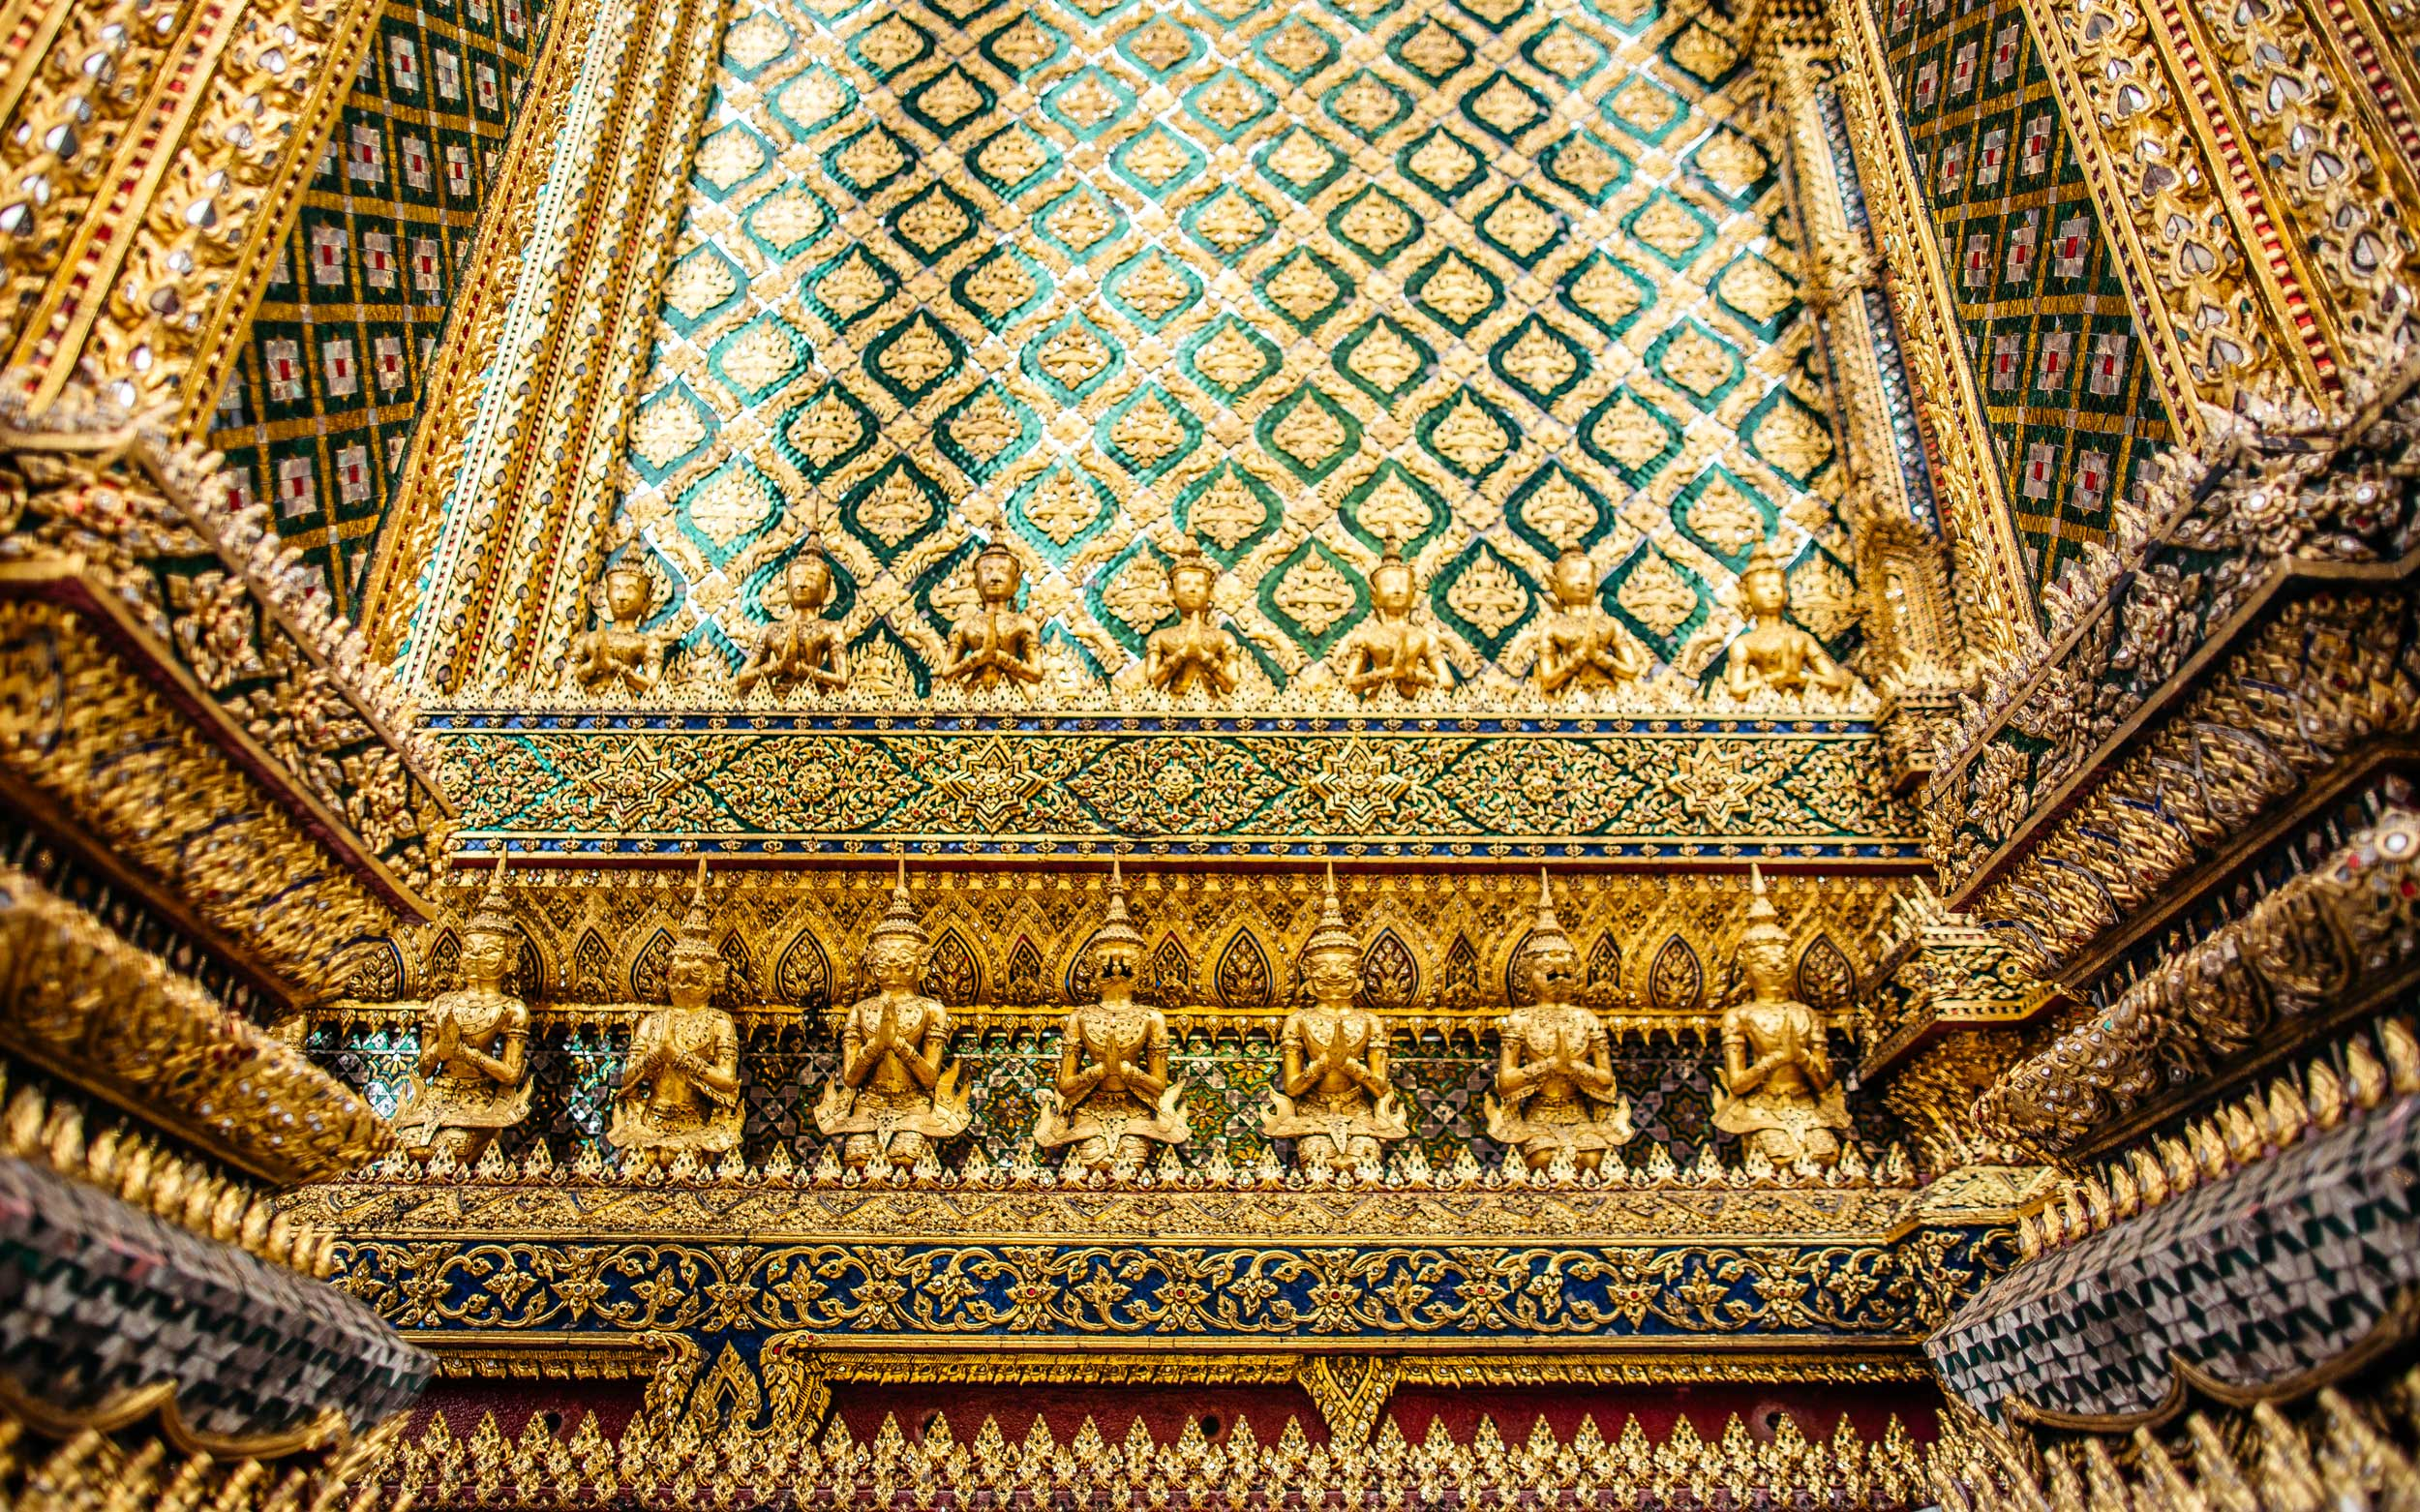 A wall of intricate gold and green filigree design with miniature Buddhas lining it, Thailand